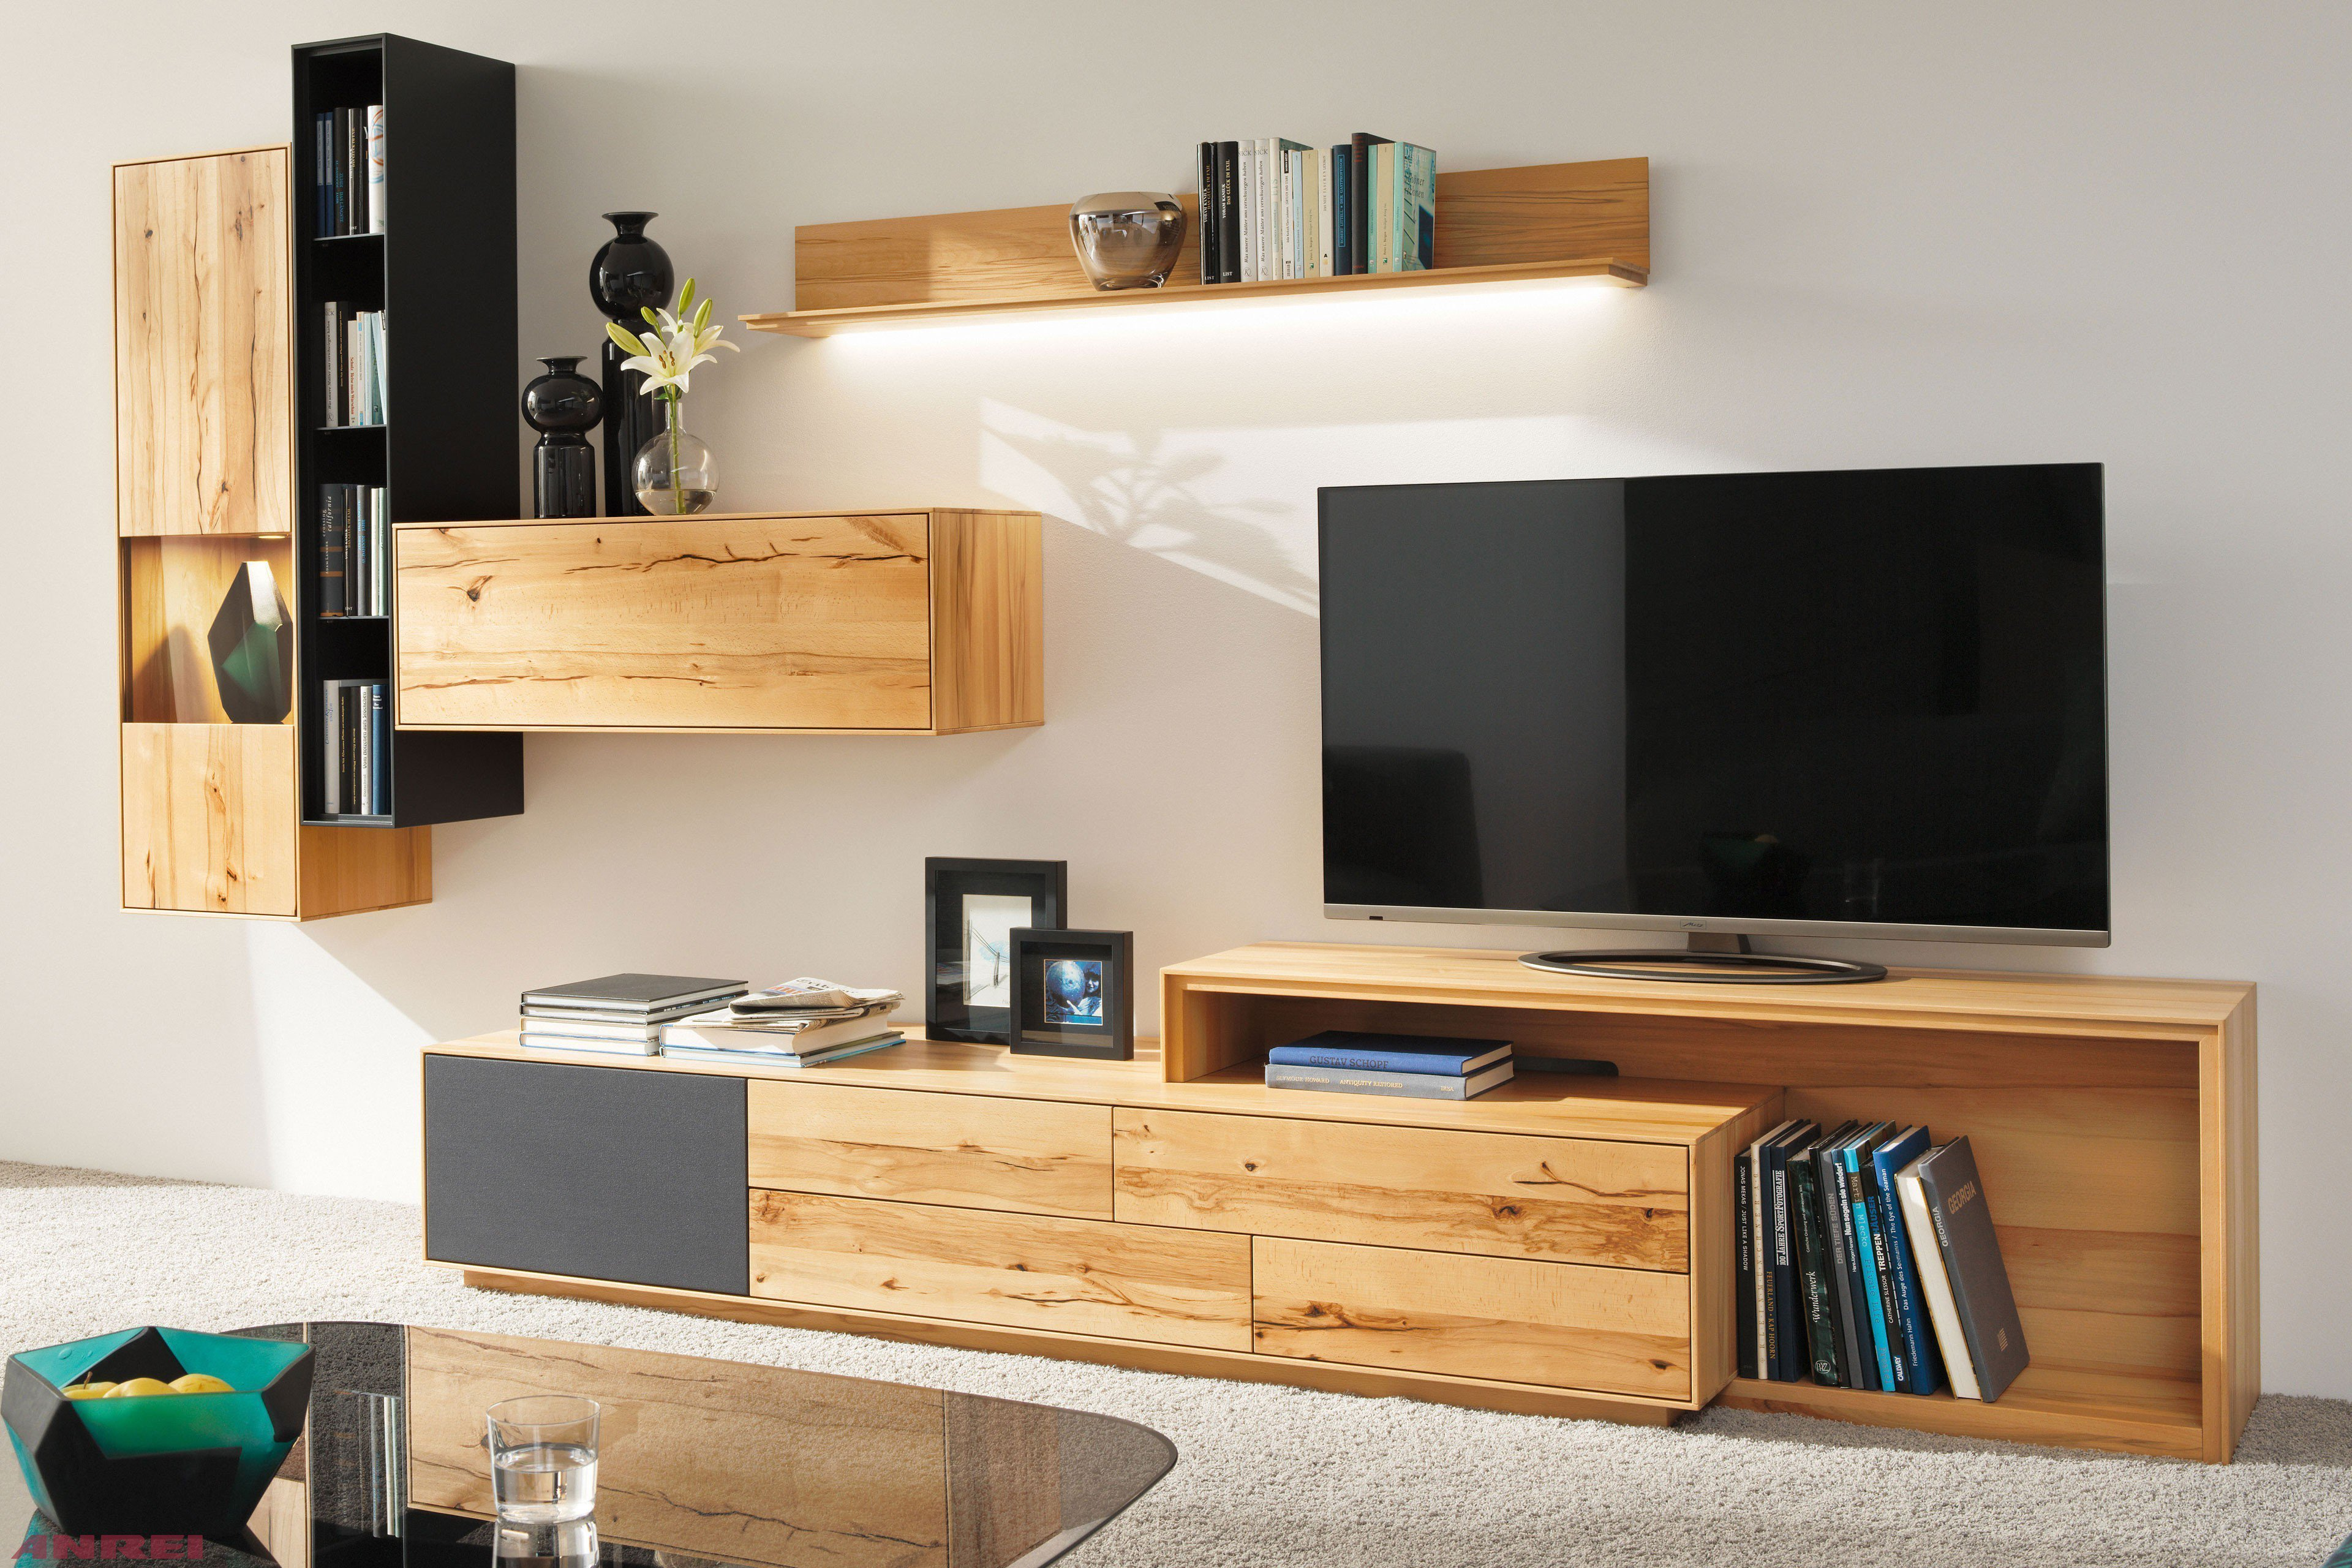 anrei wohnwand puro pu 02 kernbuche wildkernbuche m bel. Black Bedroom Furniture Sets. Home Design Ideas